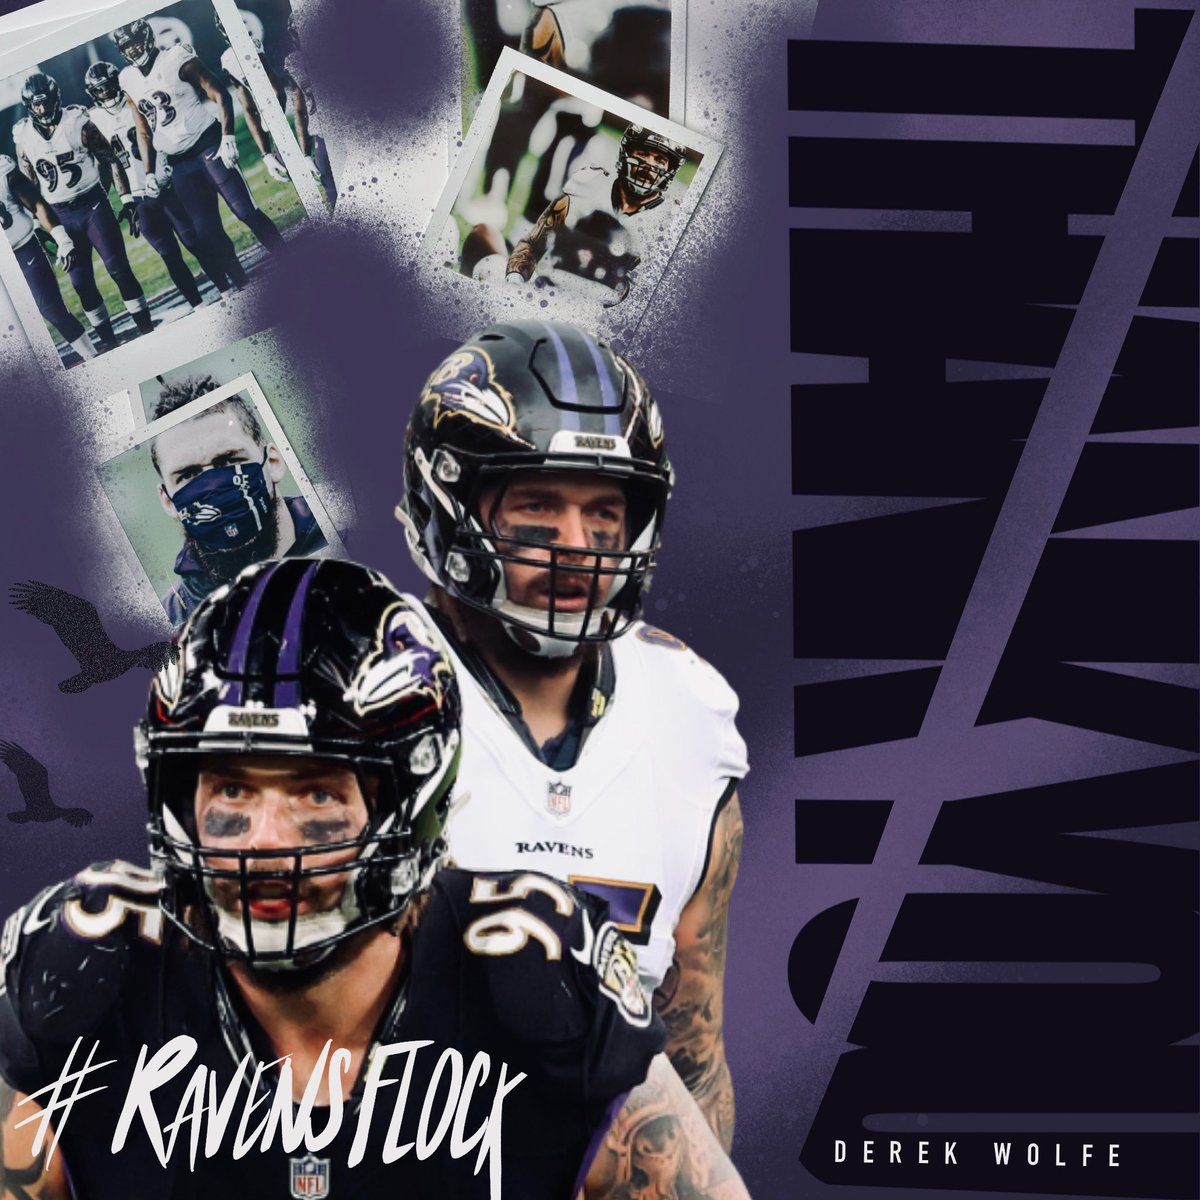 Replying to @Derek_Wolfe95: Thank you #RavensFlock for your endless support this season!